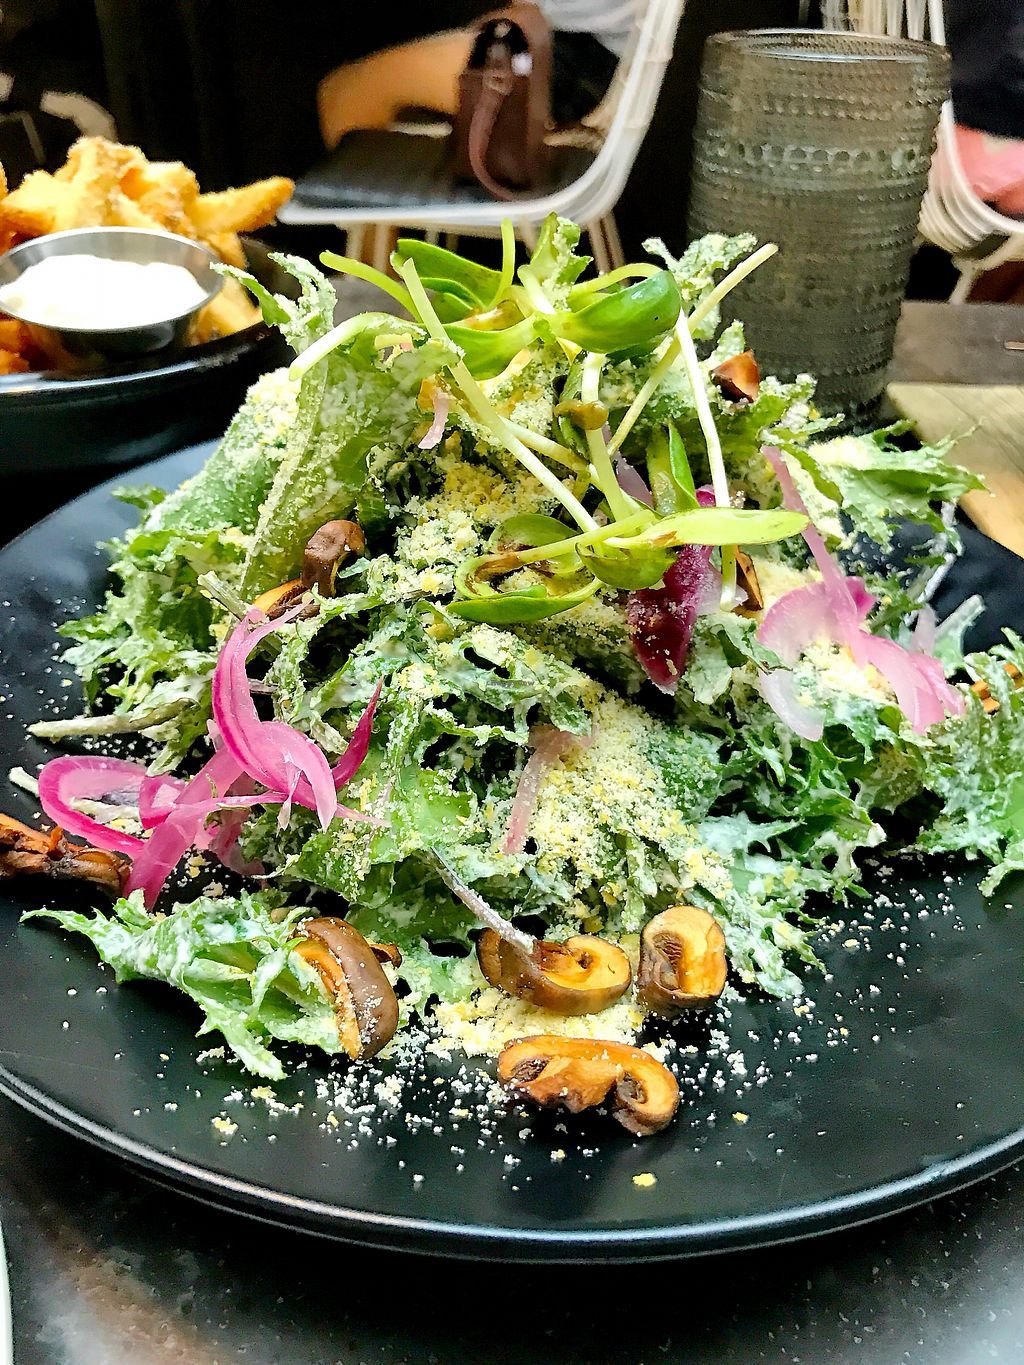 """Photo of Planta  by <a href=""""/members/profile/ElleMarie"""">ElleMarie</a> <br/>Kale Caesar ?? <br/> February 7, 2018  - <a href='/contact/abuse/image/81537/355842'>Report</a>"""